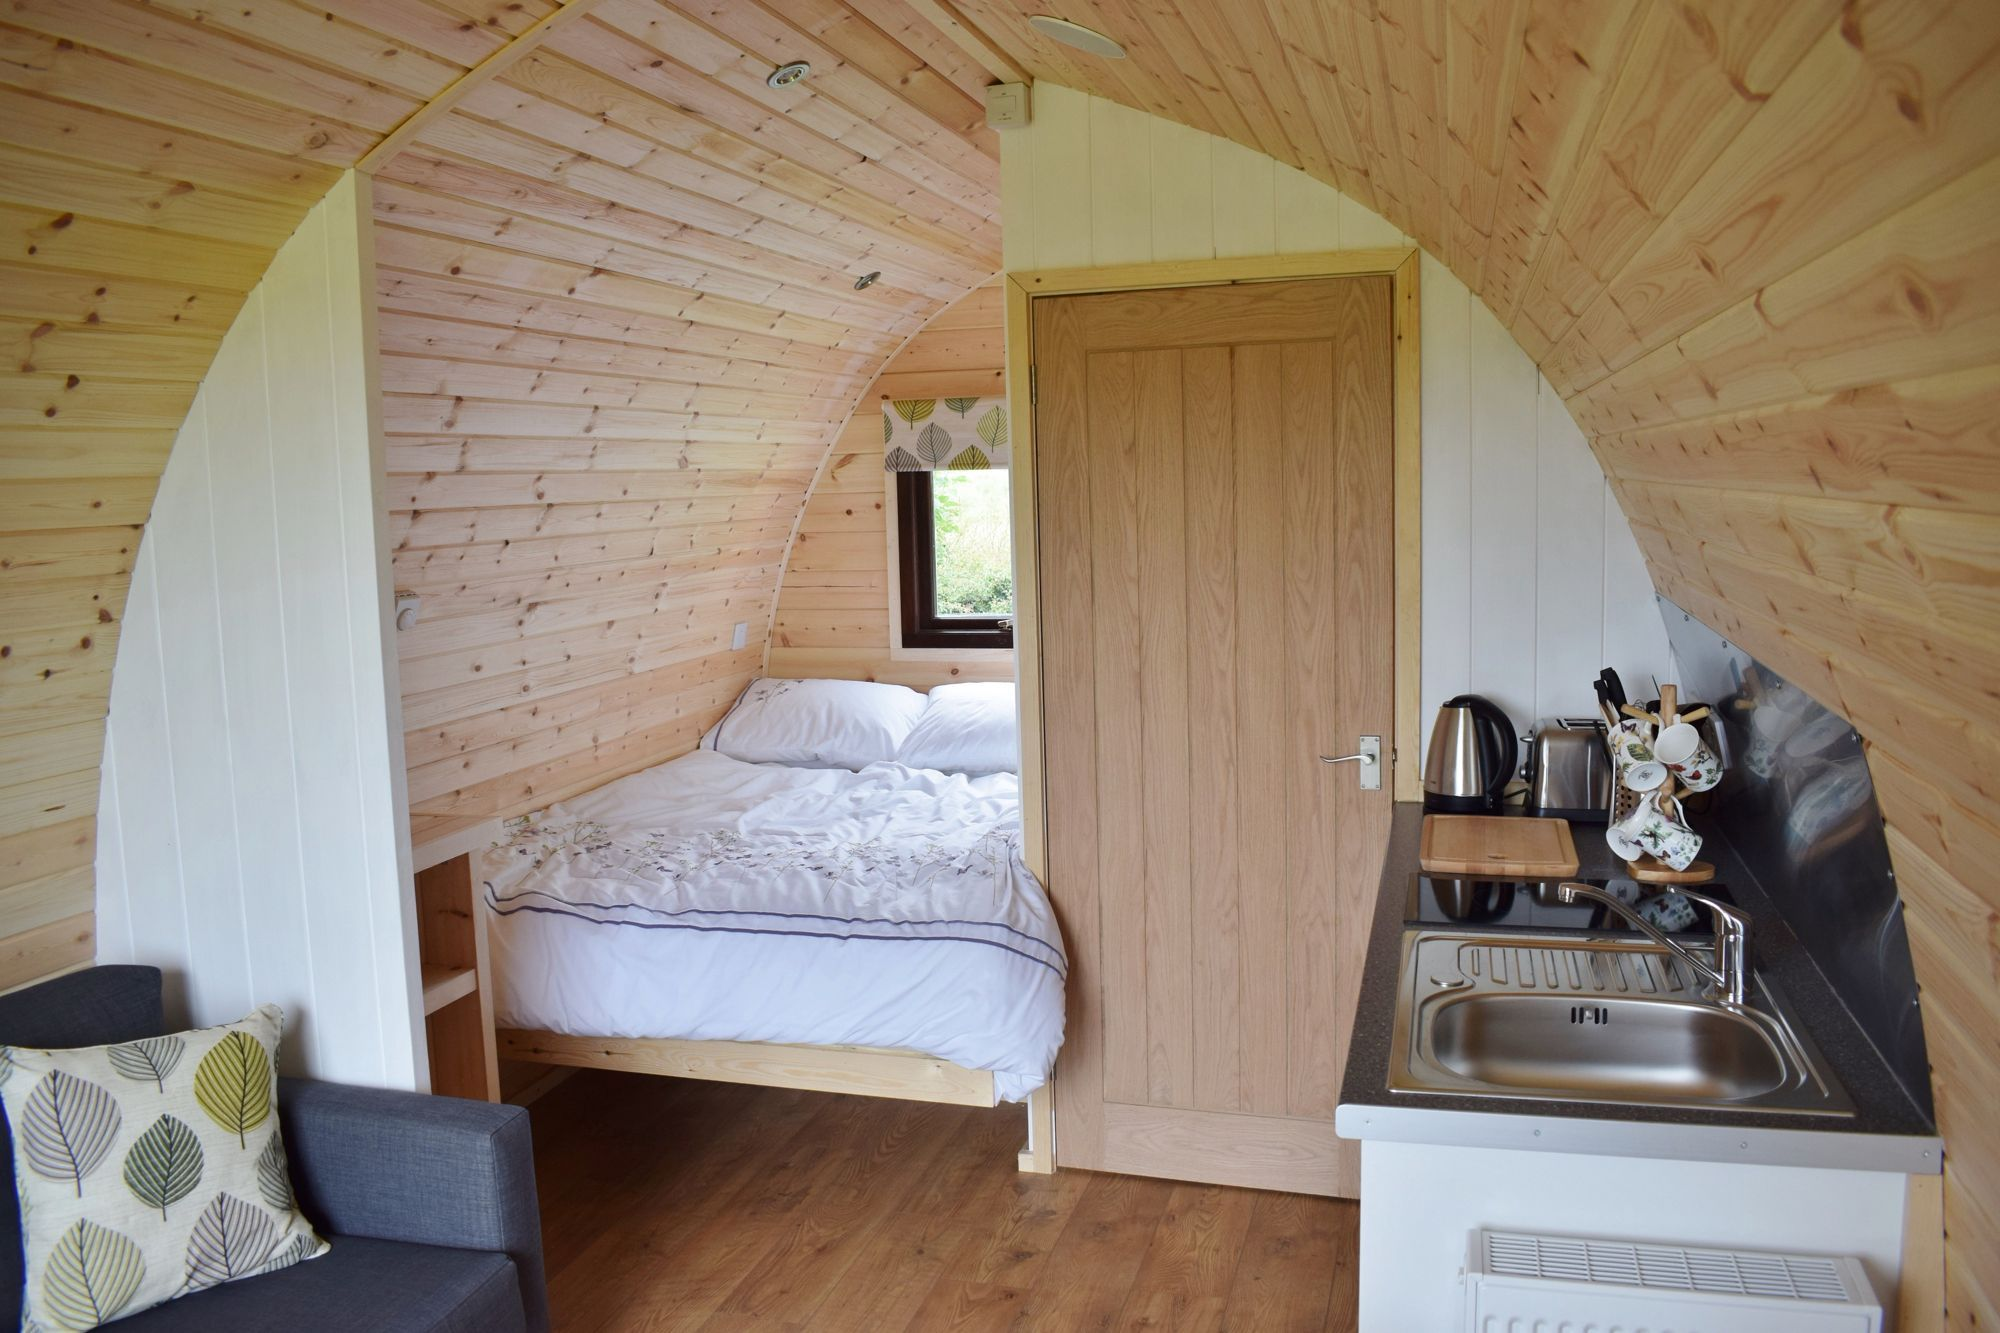 Family-sized, wooden, ensuite glamping pods in the eastern hills of the Peak District.